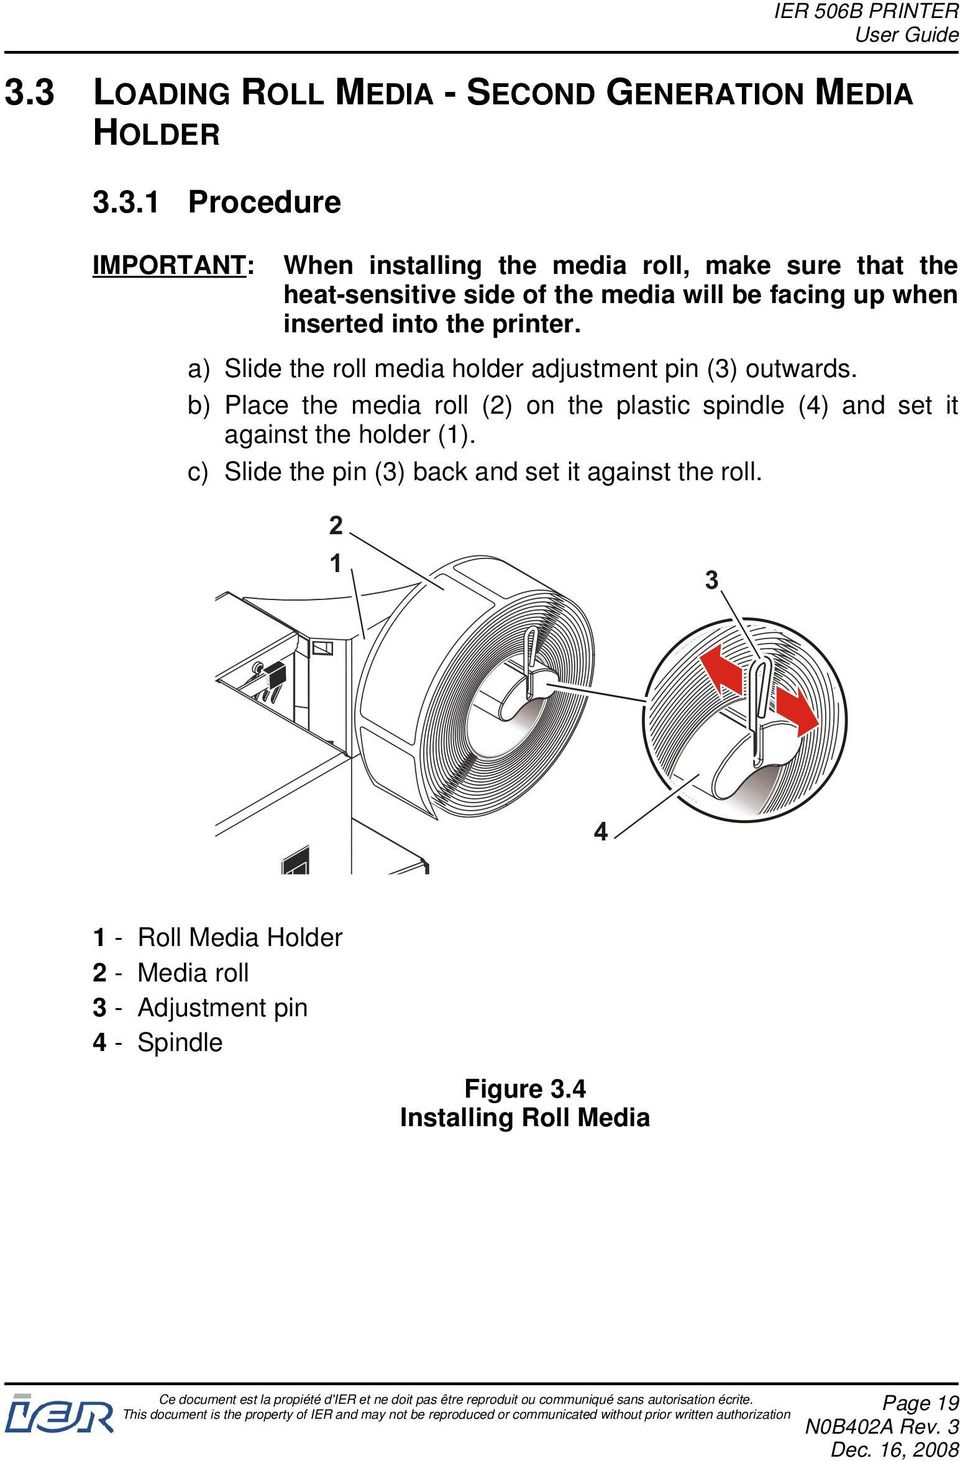 a) Slide the roll media holder adjustment pin (3) outwards.